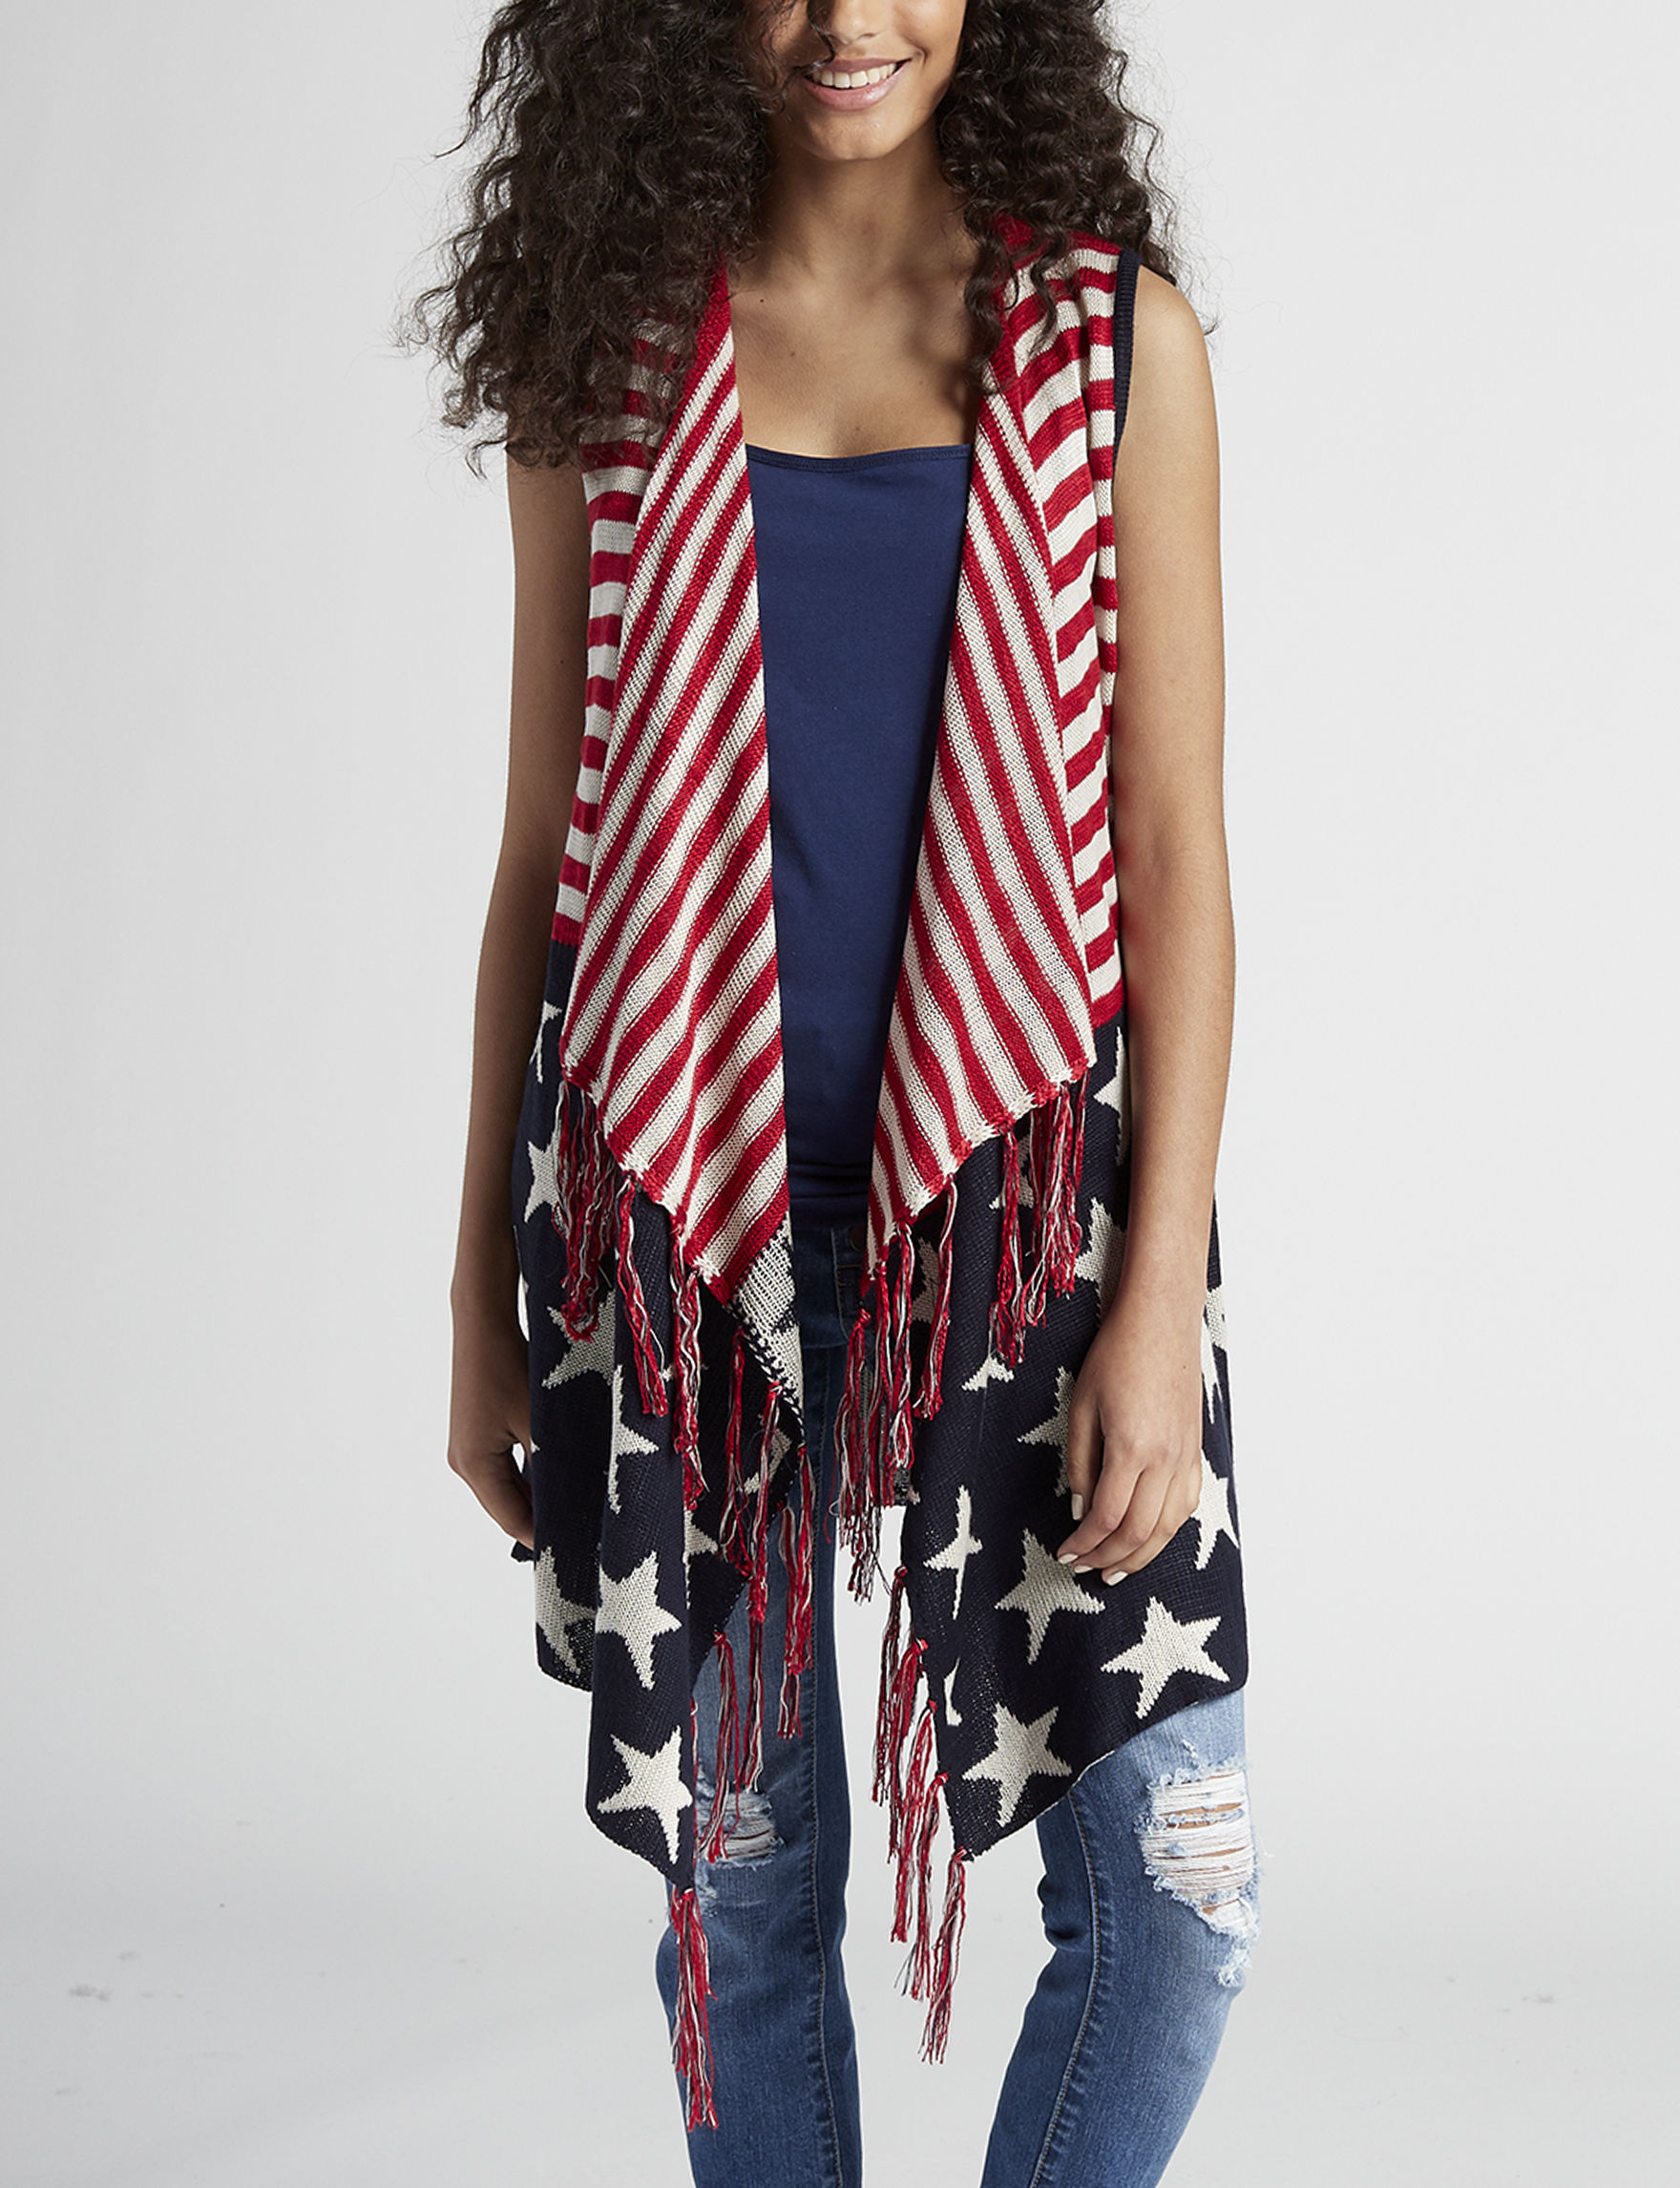 It's Our Time Red / White / Blue Vests